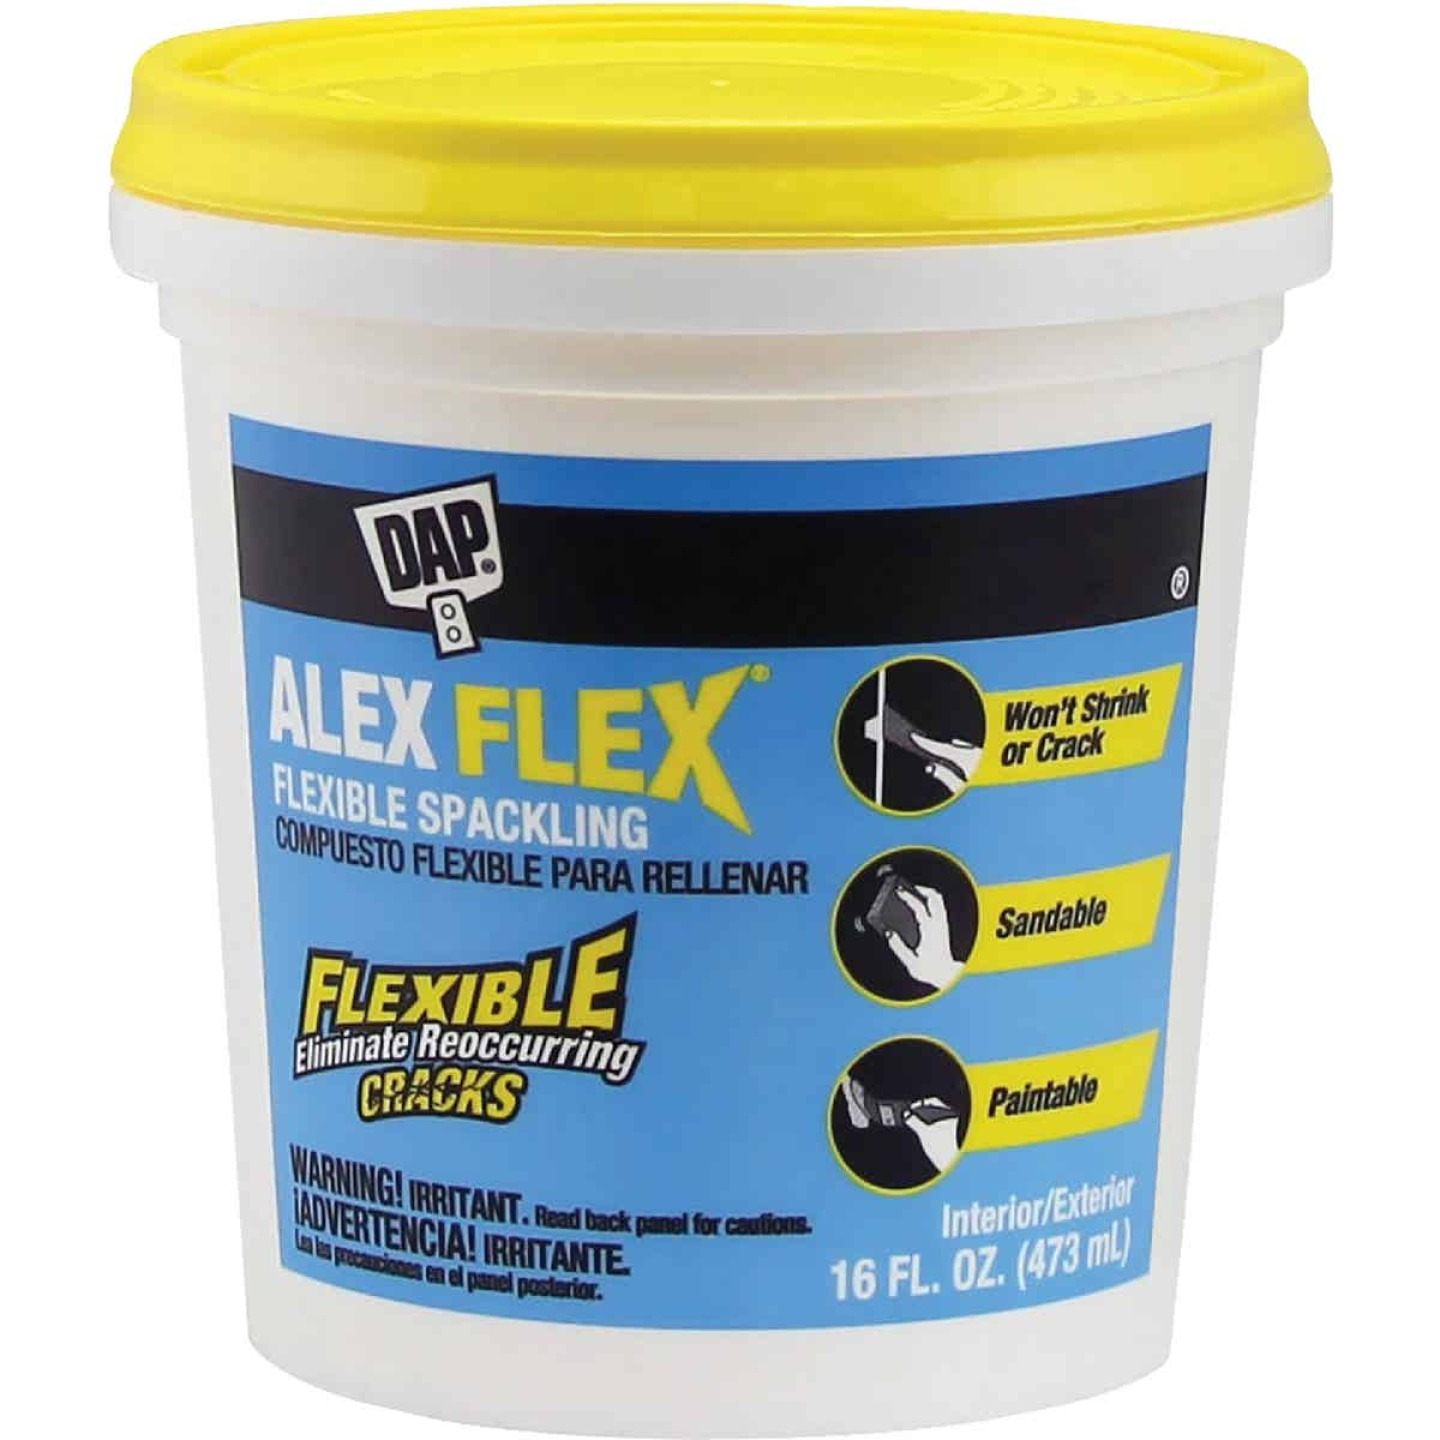 Dap Alex Flex 16 Oz. Heavy-Duty Acrylic Spackling Image 1